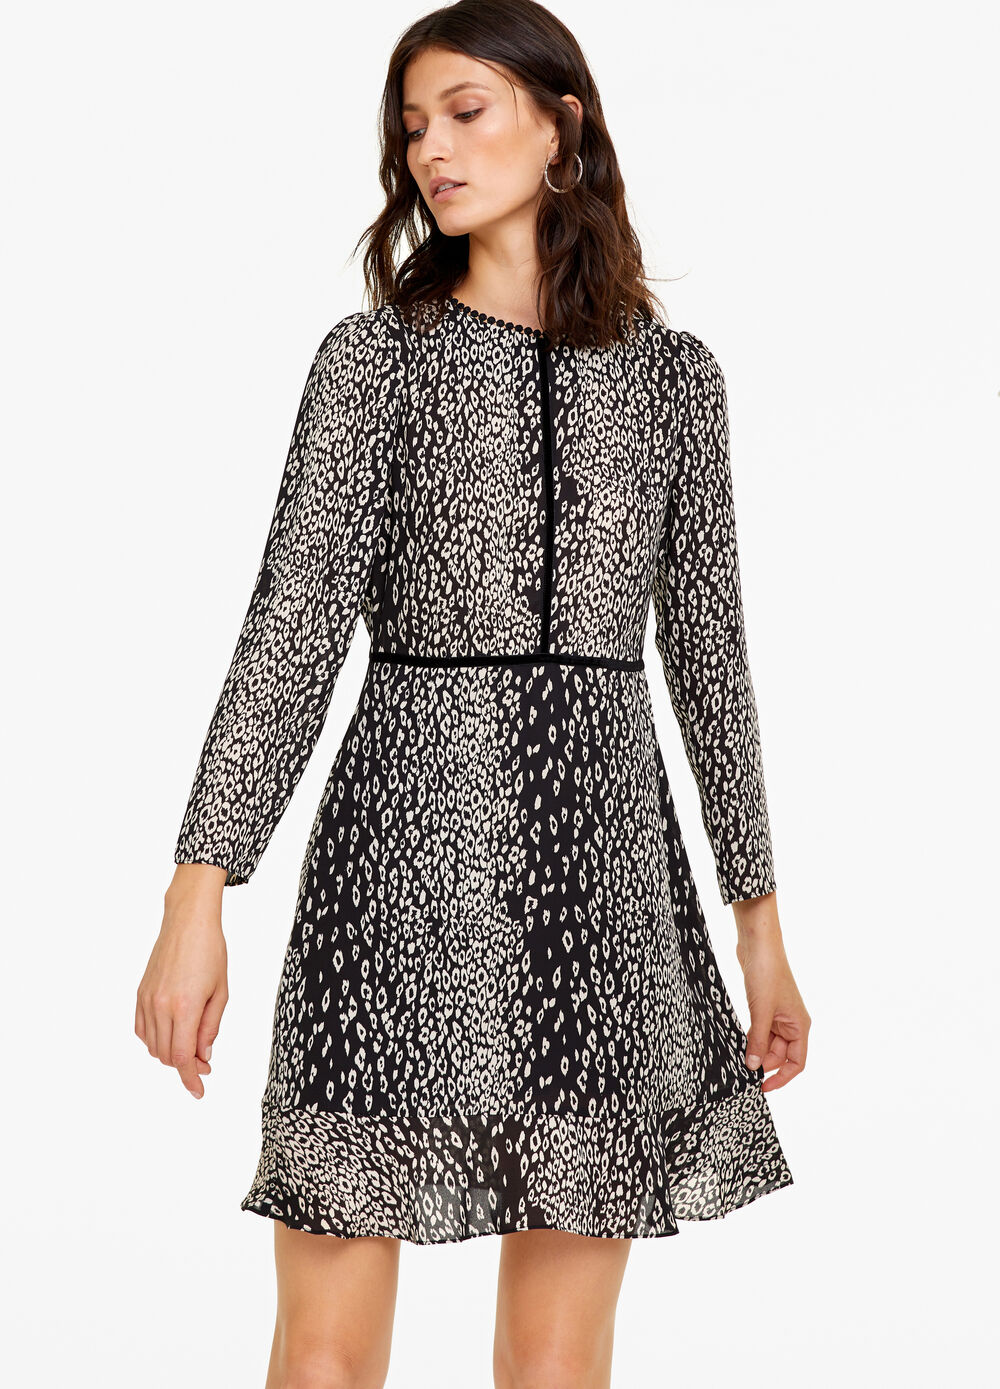 Dress with all-over animal print